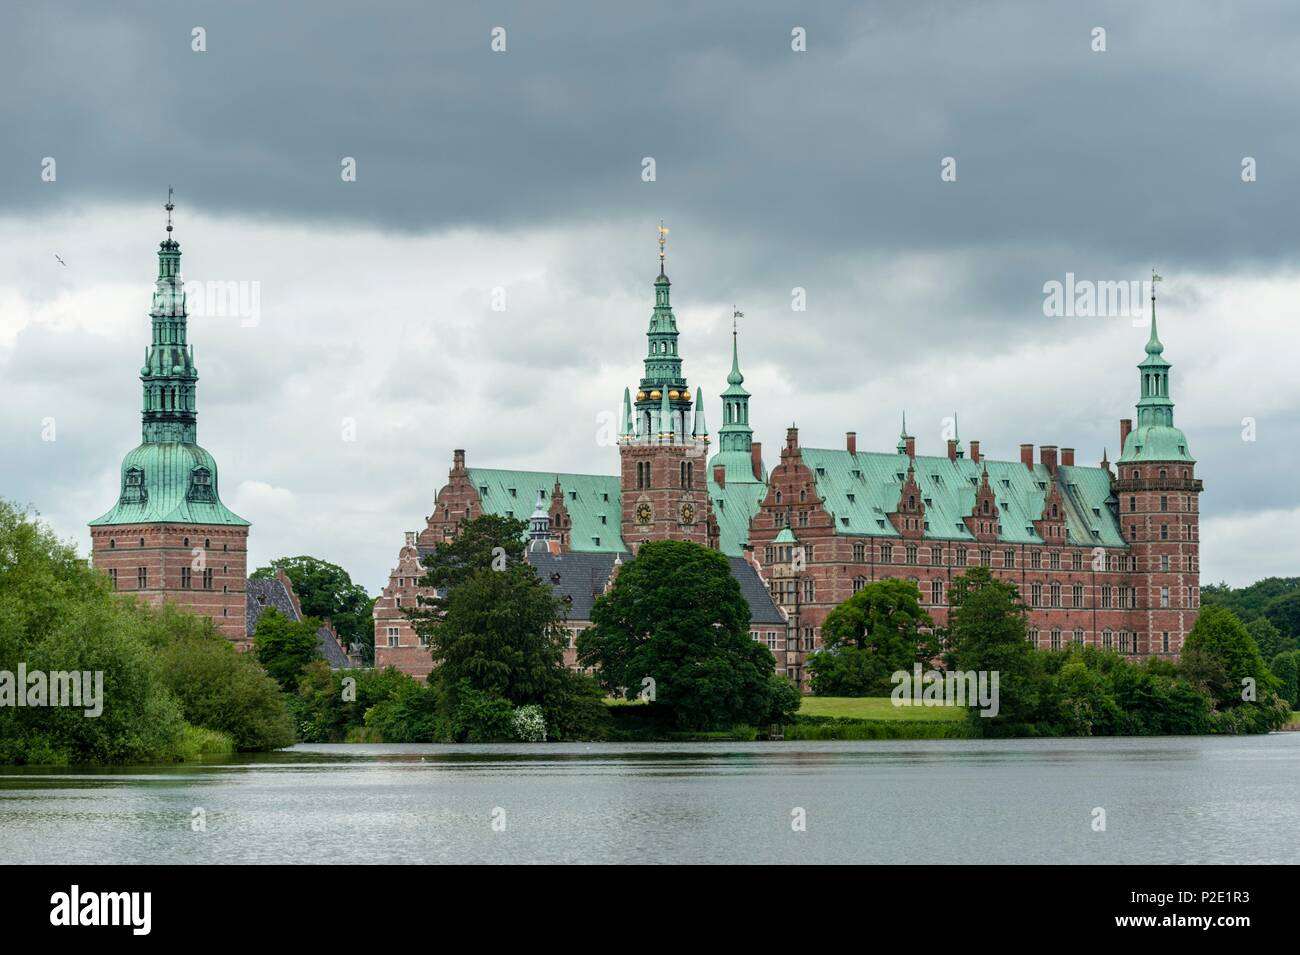 Denmark, Zealand, Hillerod, Frederiksborg Royal Castle - Stock Image